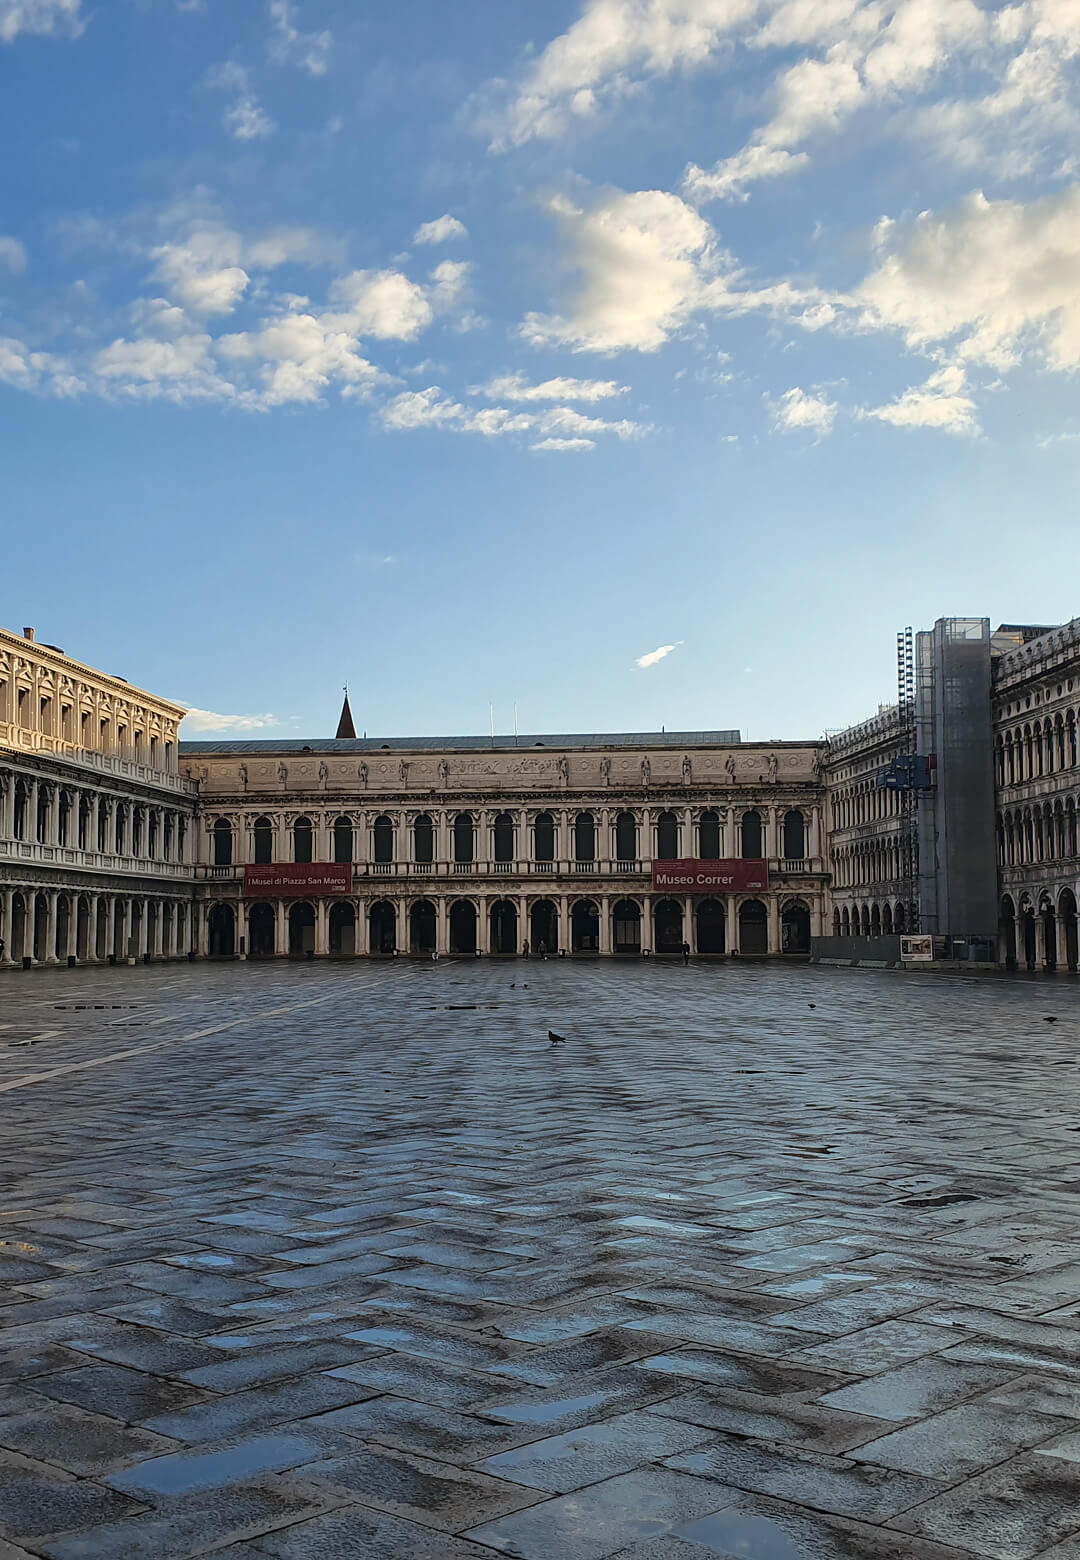 Empty piazza during the Venetian lockdown | Venice reopens post COVID-19 lockdown | STIRworld